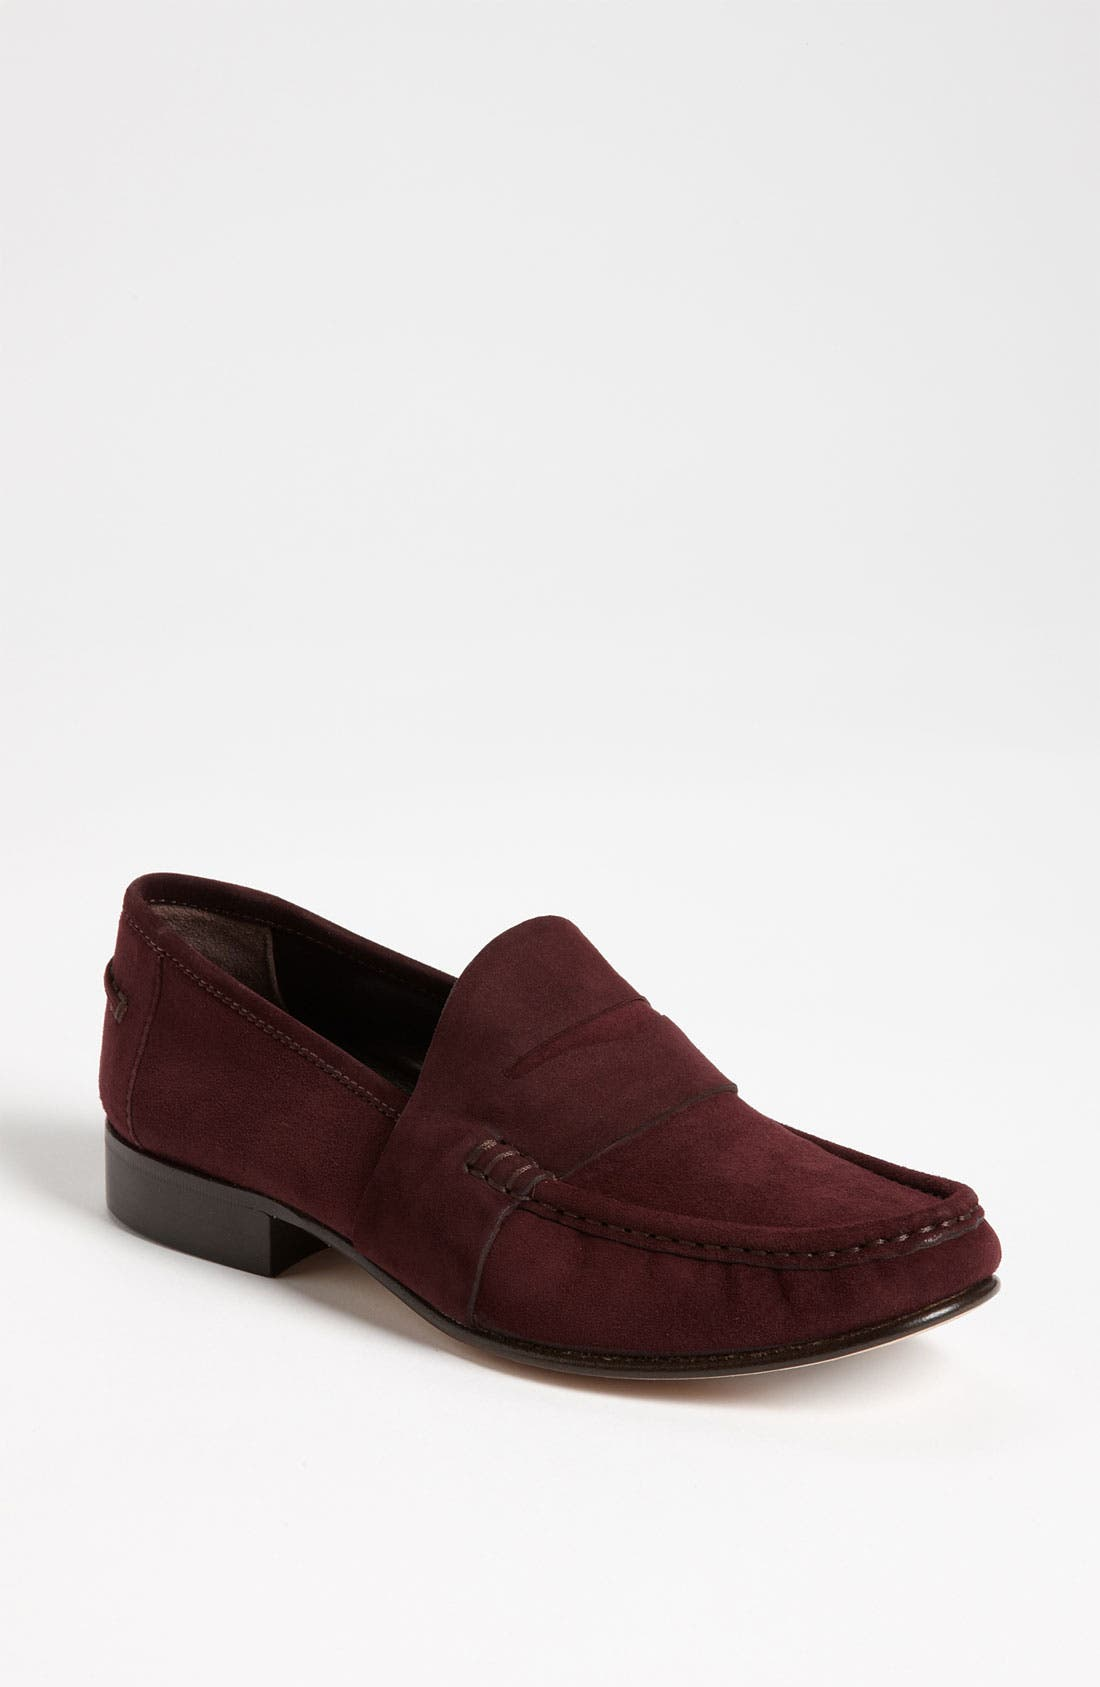 Main Image - Vera Wang Footwear 'Audrey' Loafer